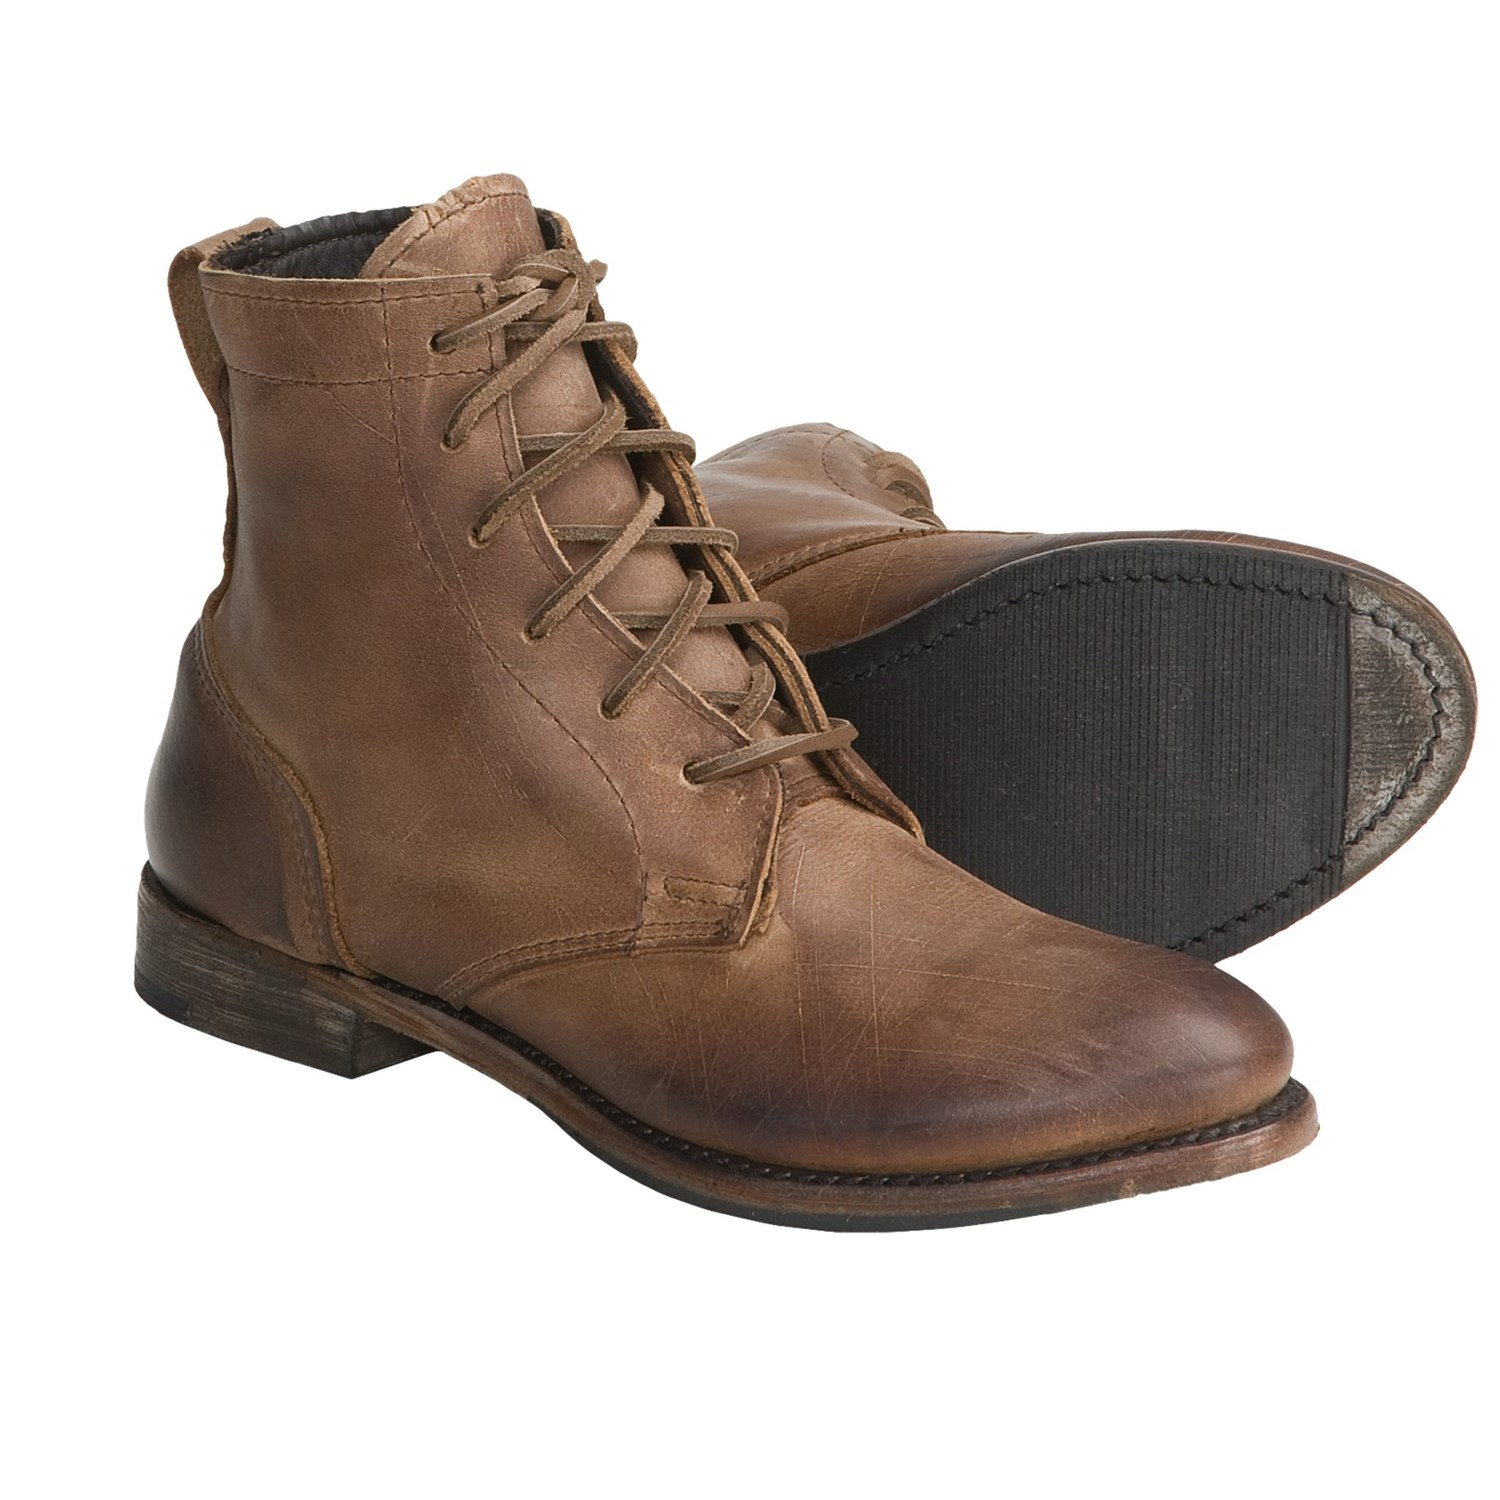 PW Minor Tribeca Women's Chukka Boot: When Staying Warm, Dry and Comfortable is Necessary. PW Minor Tribeca Women's Chukka Boot can comfort sensitive feet even in the harshest of weather.